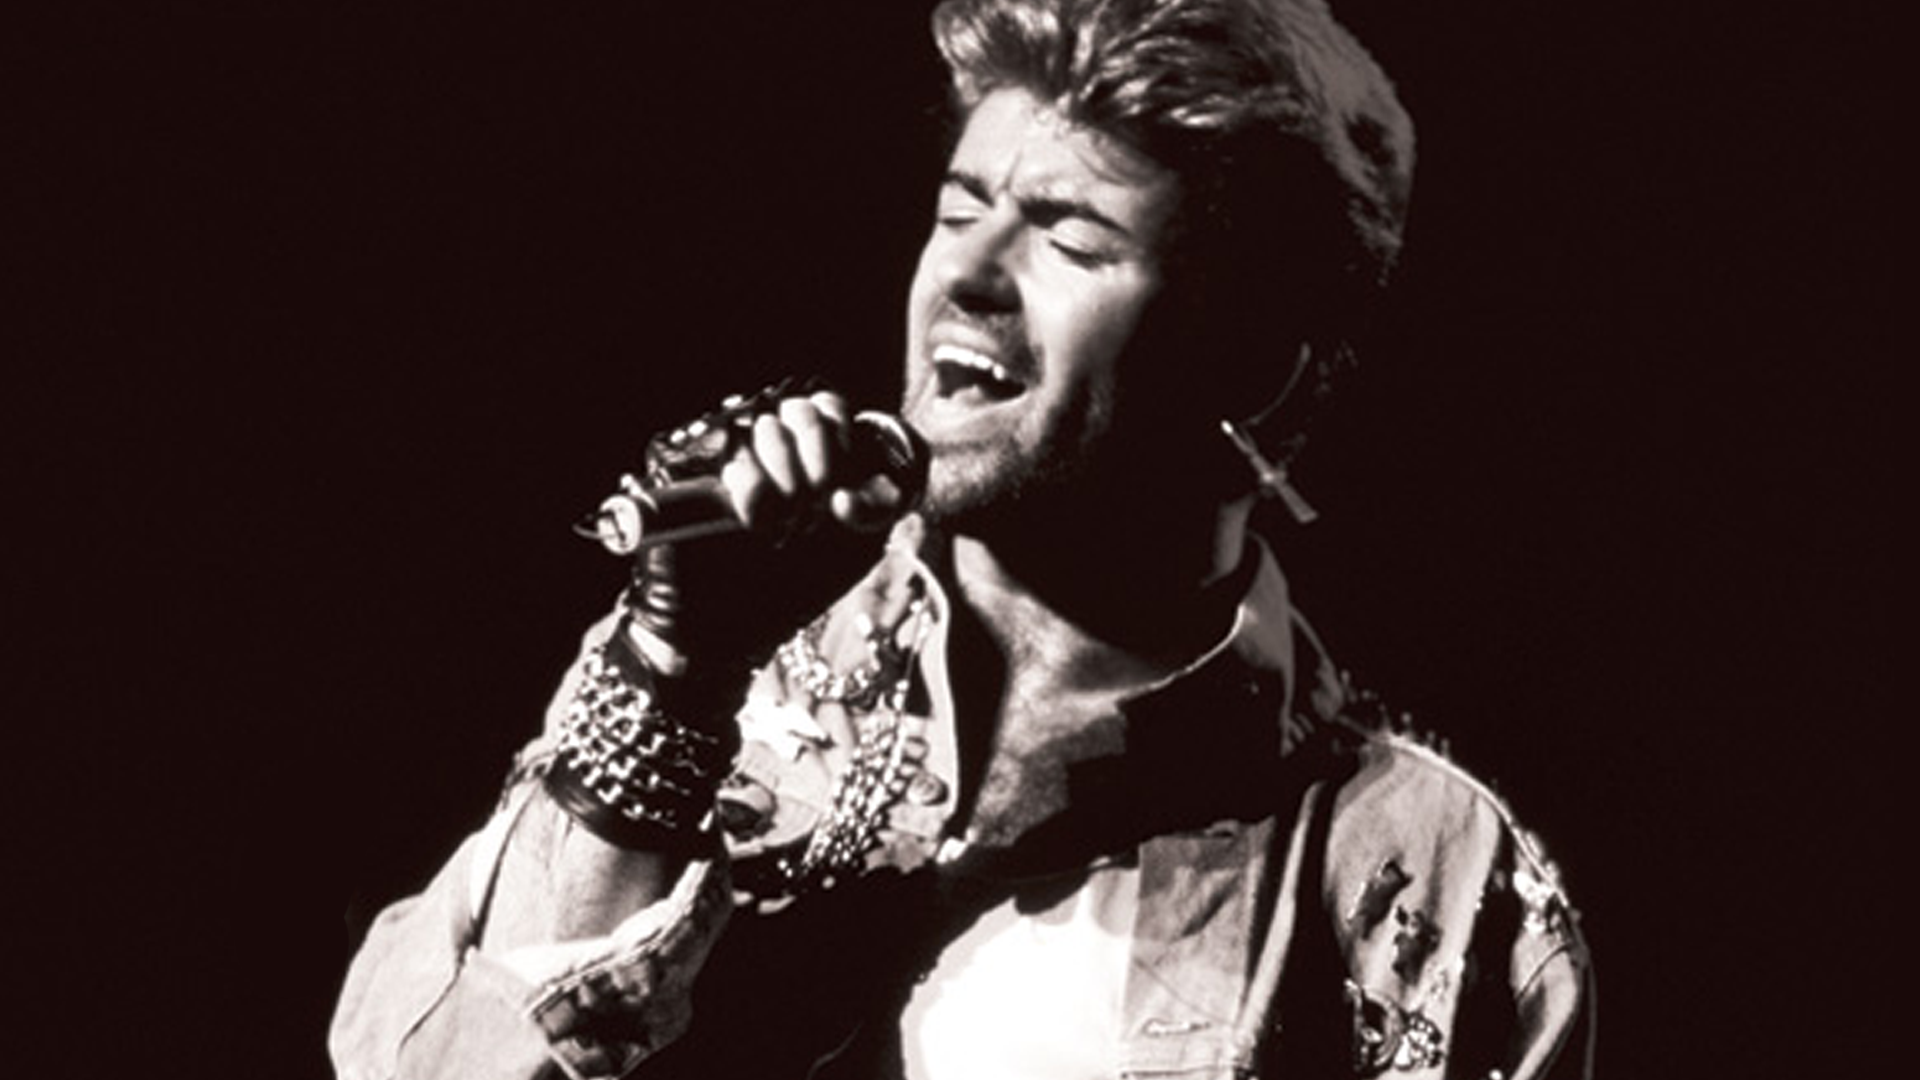 11 of George Michael's Greatest Live Performances and Duets